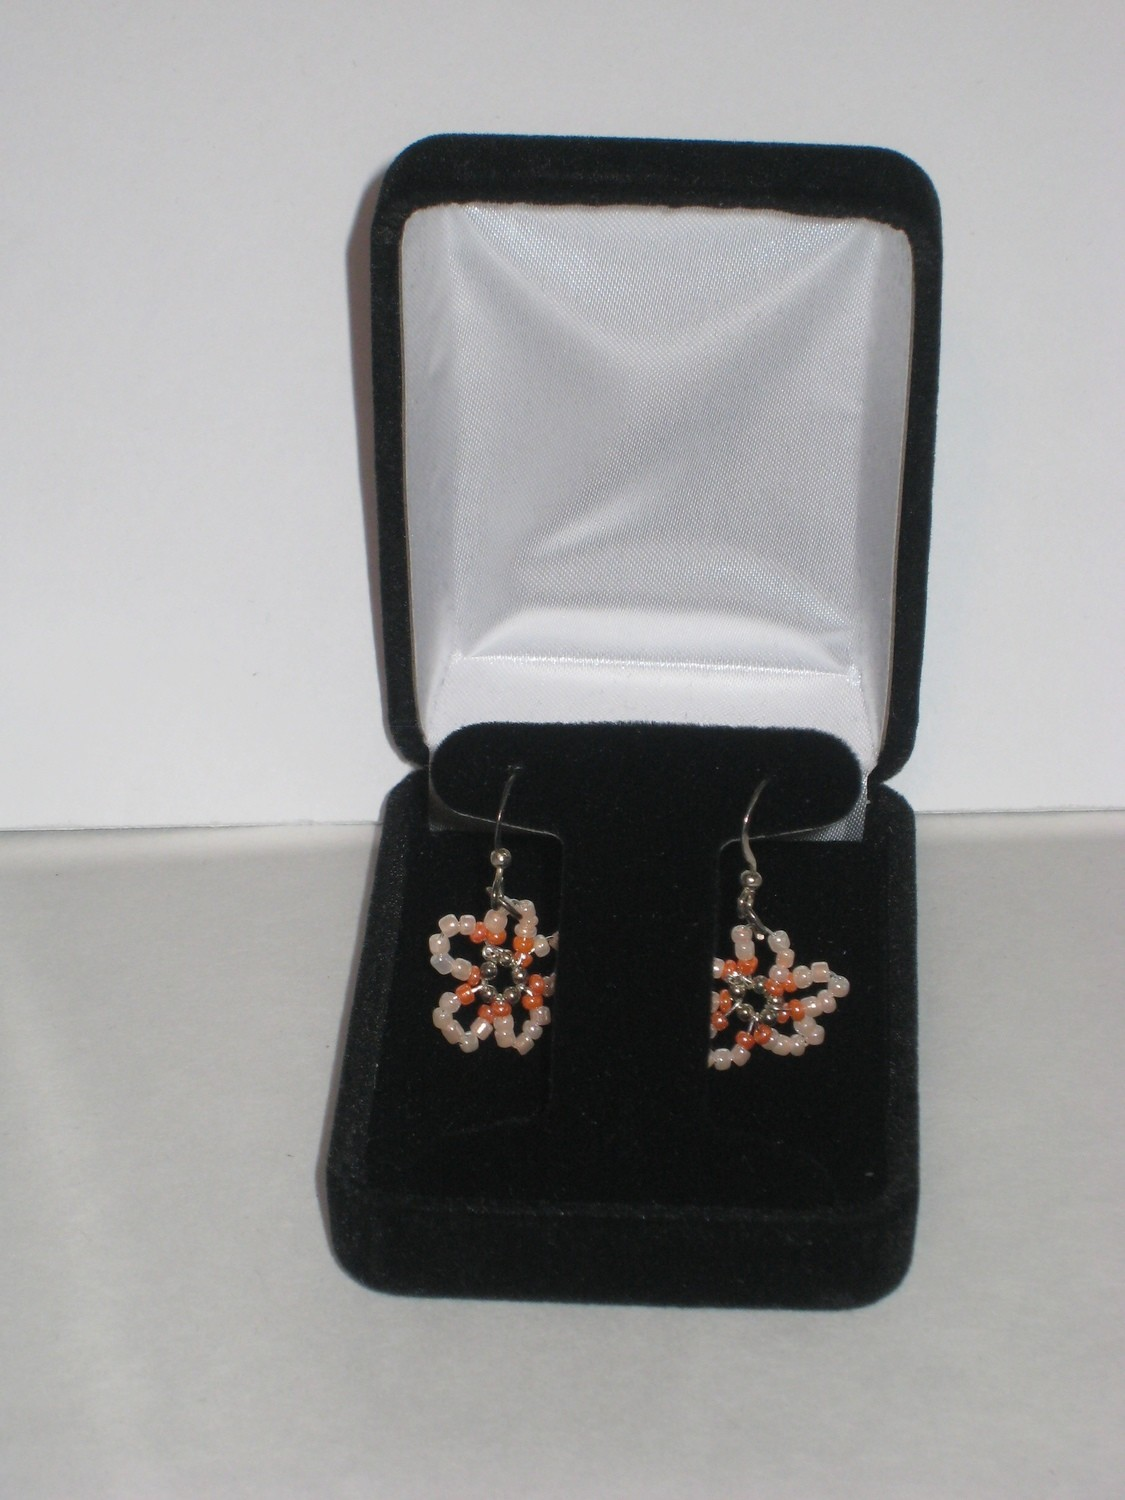 PEACH BLOSSOM EARRINGS/ BOUCLES D'OREILLES DE FLEURE DE PECHE